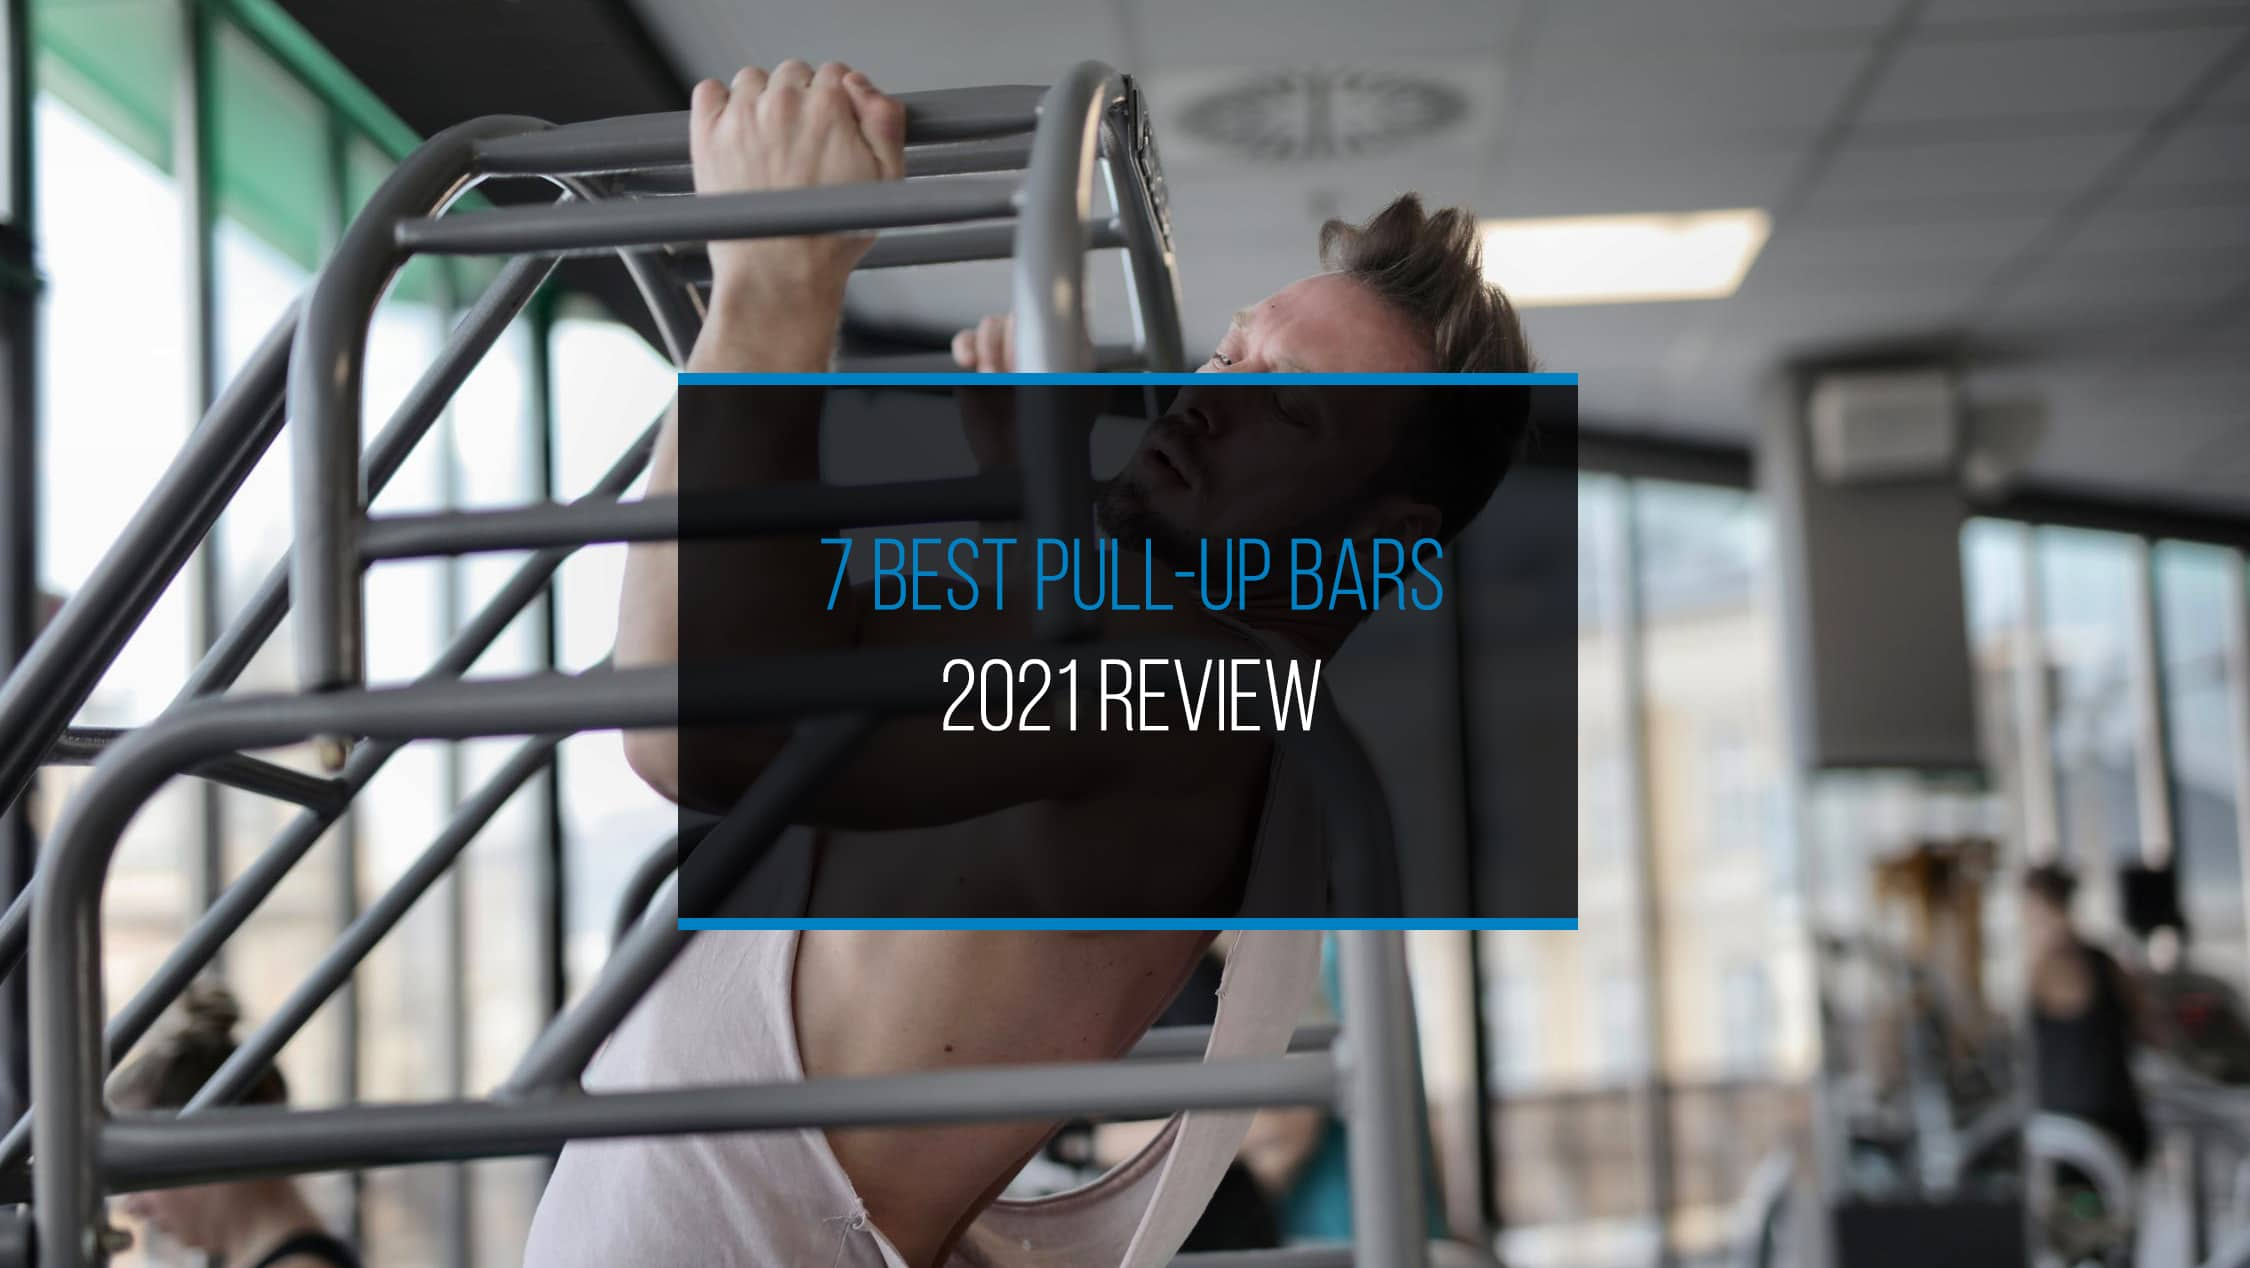 7 Best Pull-up Bars